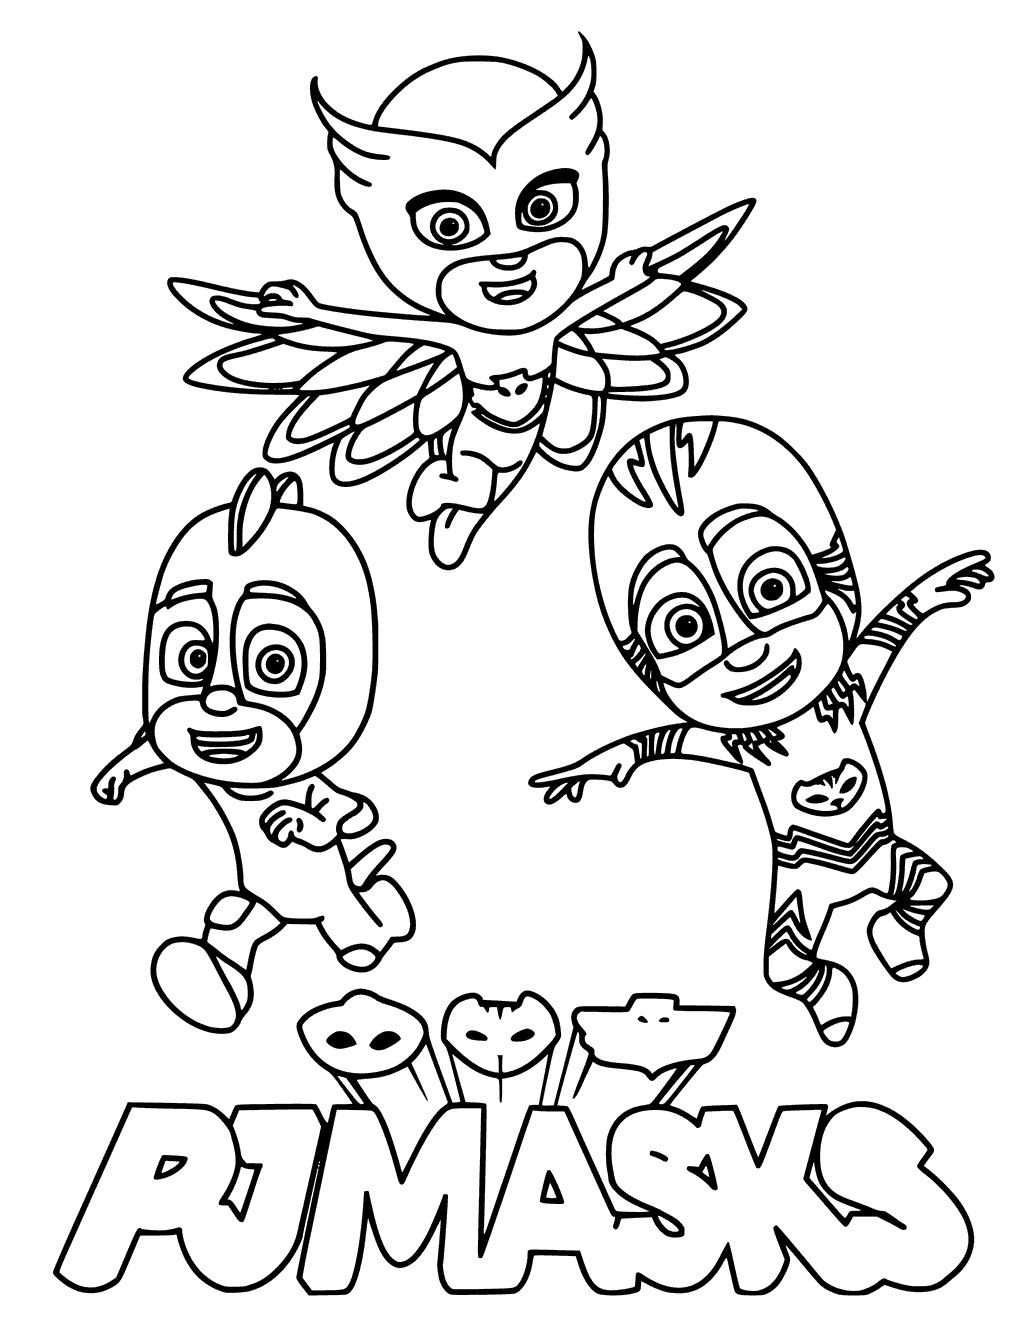 Pj Masks Villain Pj Masks Coloring Pages Birthday Coloring